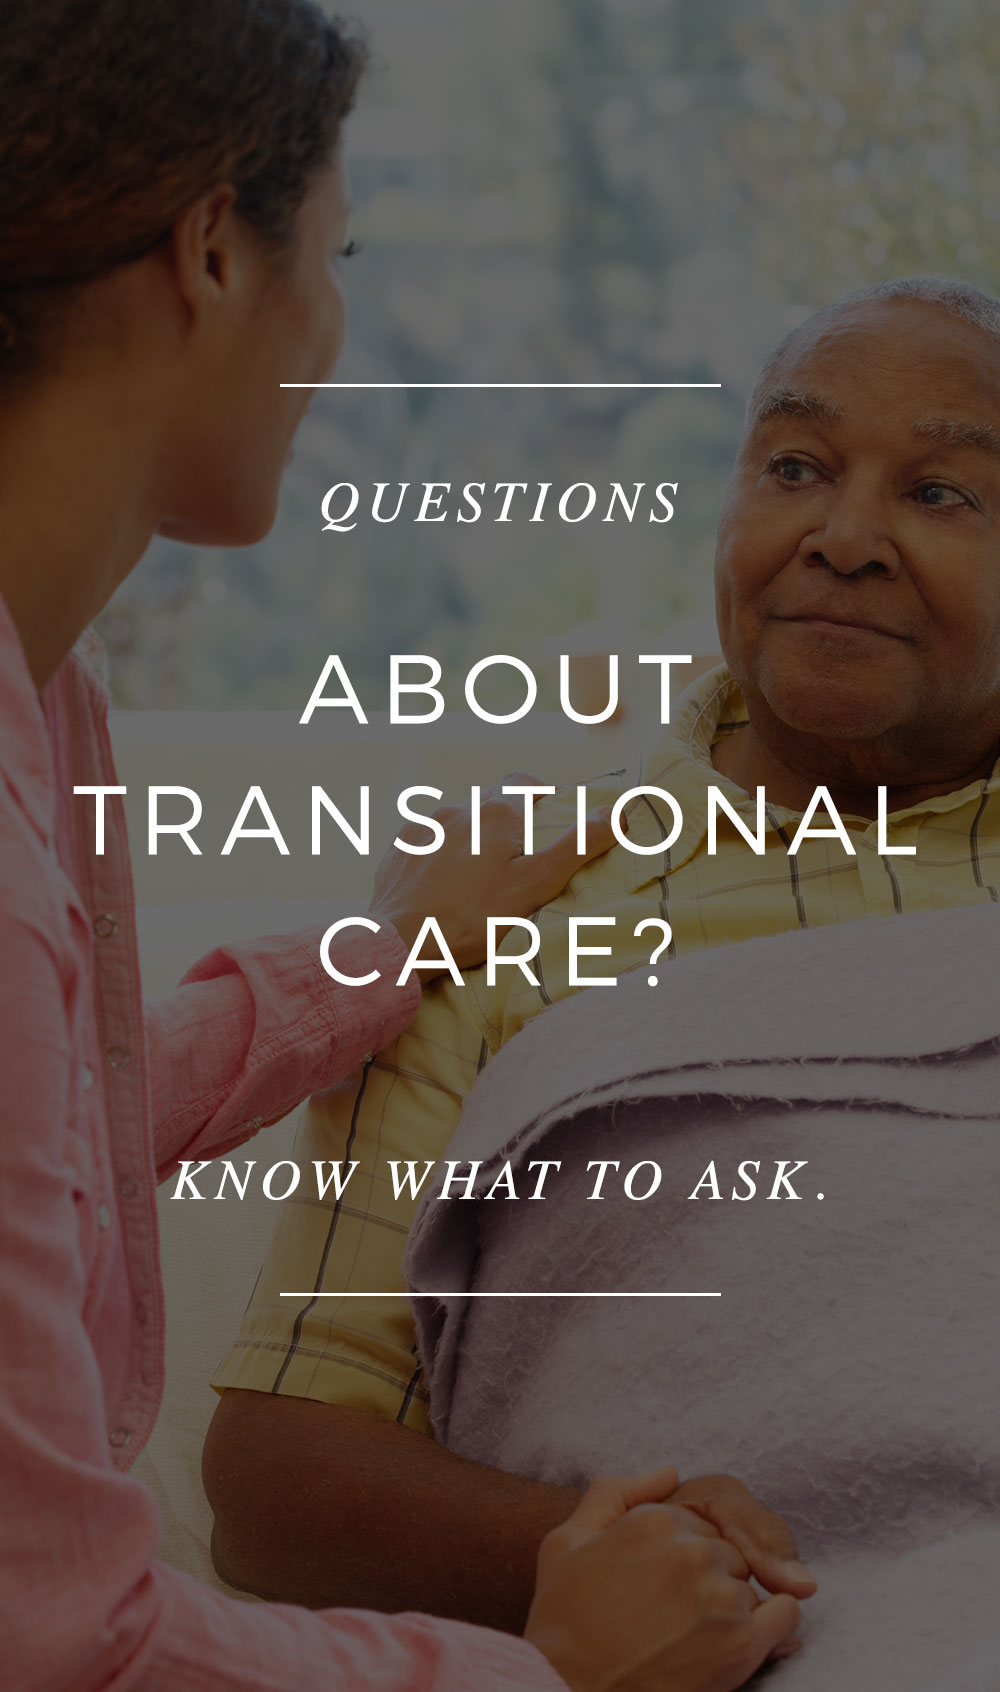 You know your loved one needs transitional care, but where do you go and what questions do you ask to be sure your loved one is getting the best care? Here is the a list of the most important questions to ask about transitional care.